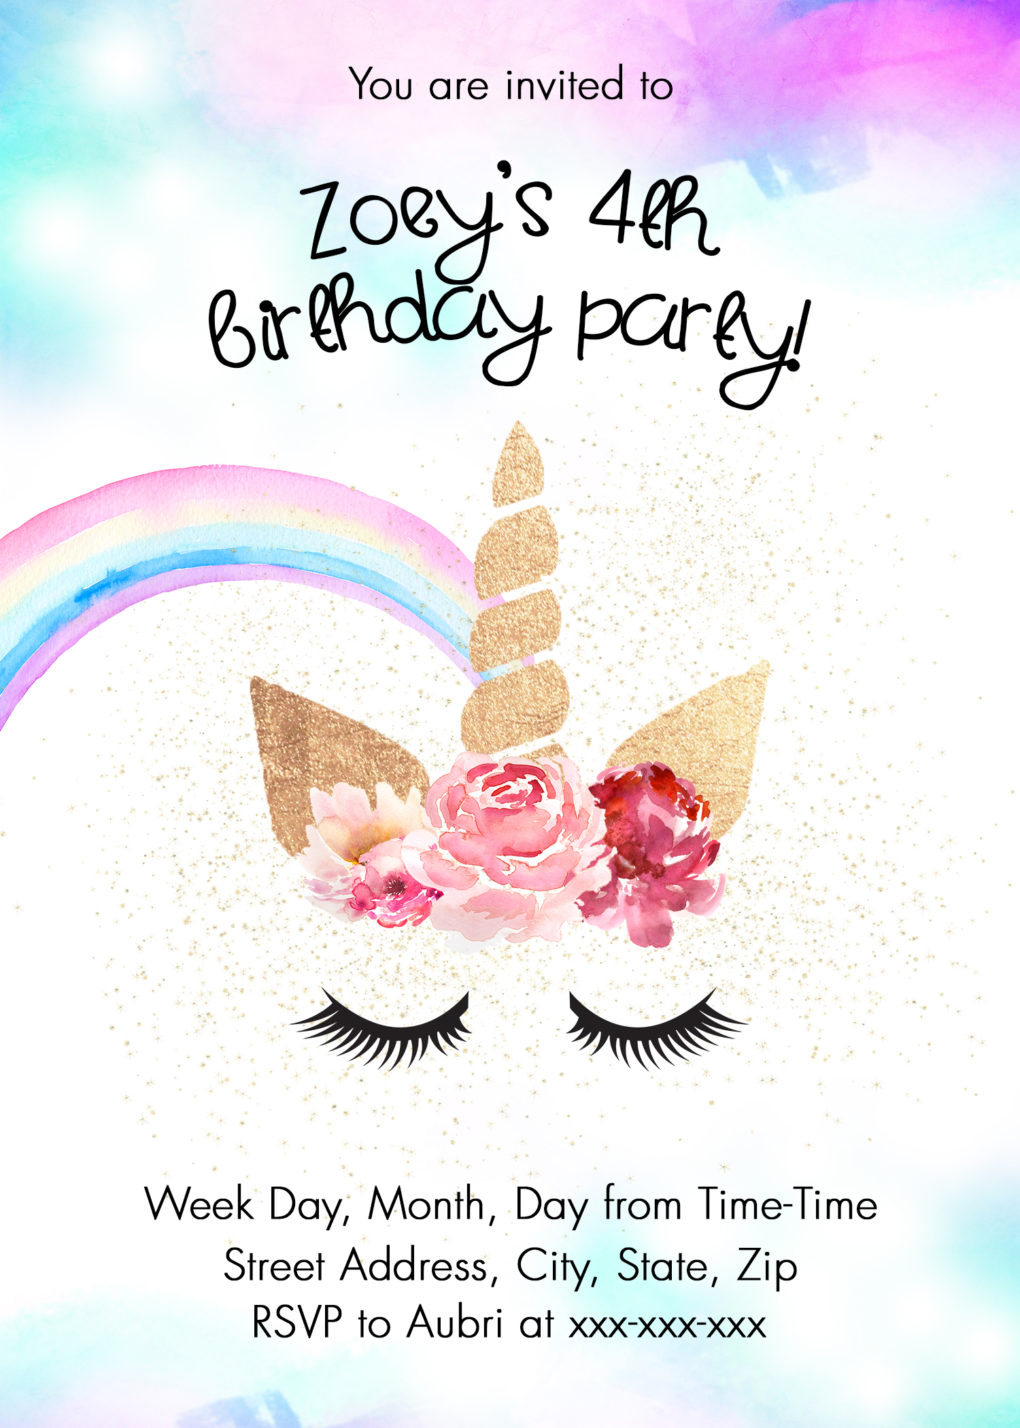 picture about Free Printable Unicorn Invitations titled Unicorn Birthday Get together Guidelines w/ Absolutely free Printable - The Do-it-yourself